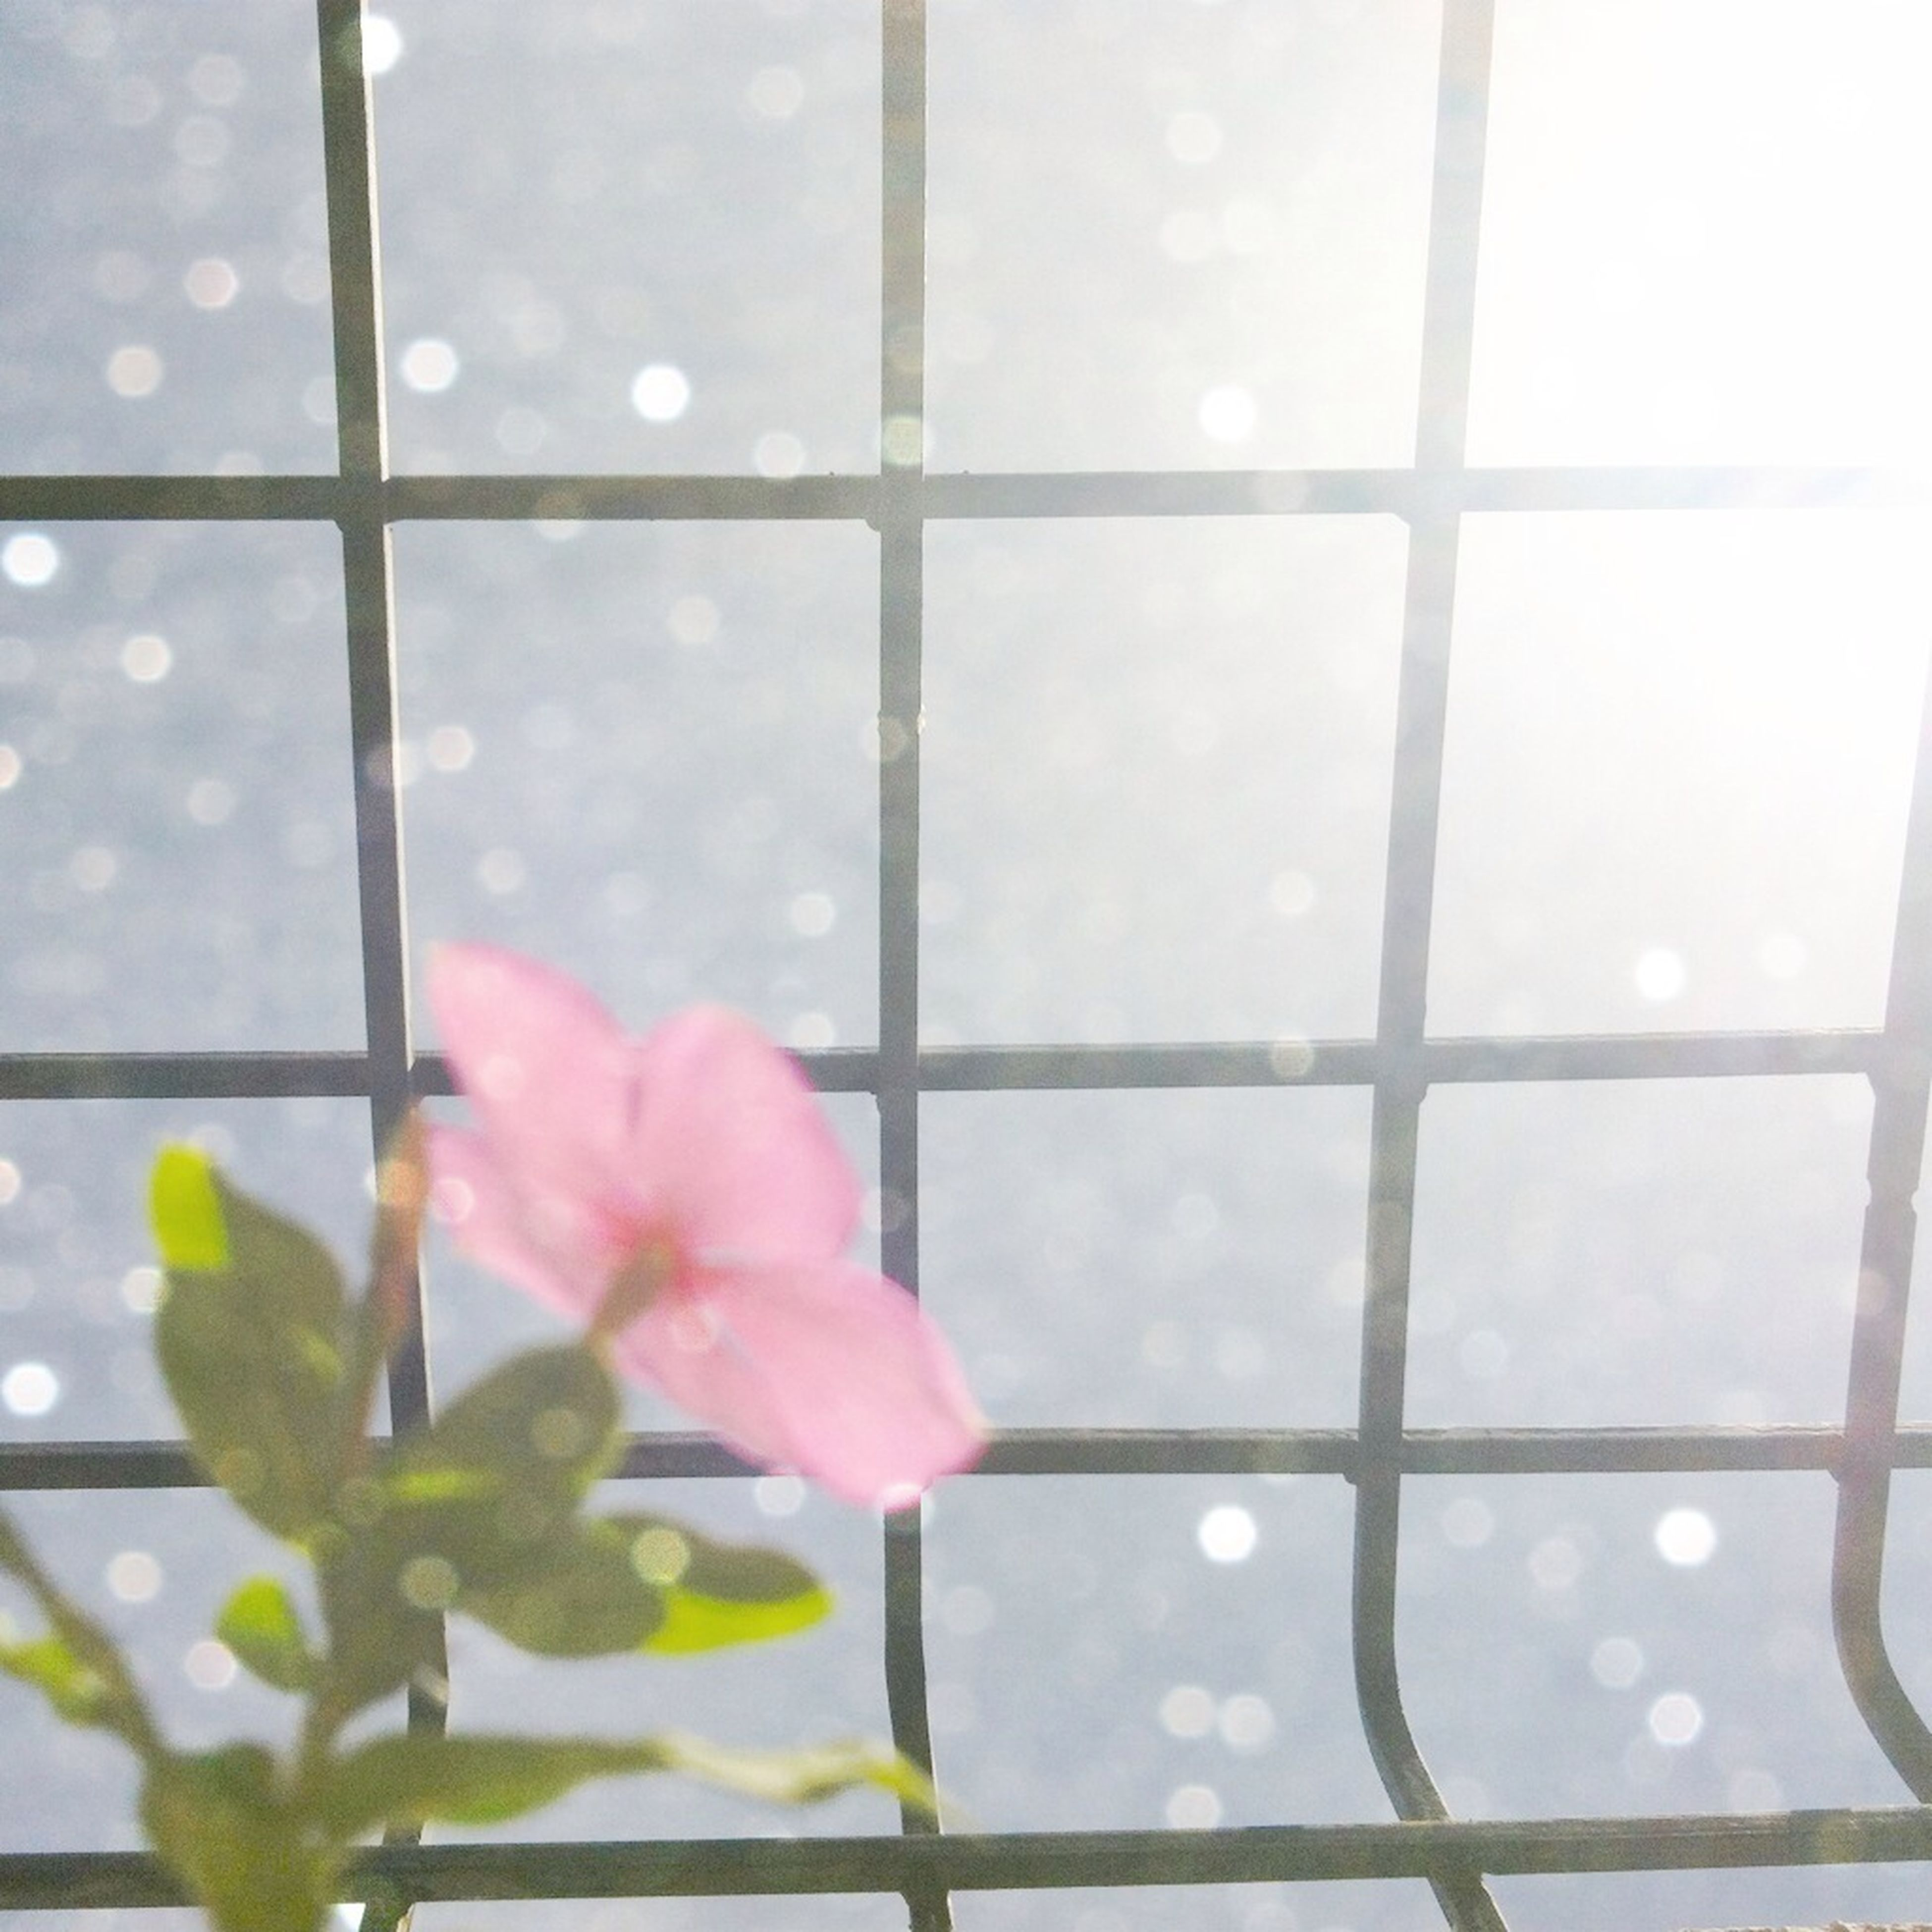 window, flower, fragility, glass - material, freshness, growth, beauty in nature, transparent, leaf, nature, indoors, close-up, plant, green color, day, petal, flower head, no people, sky, pink color